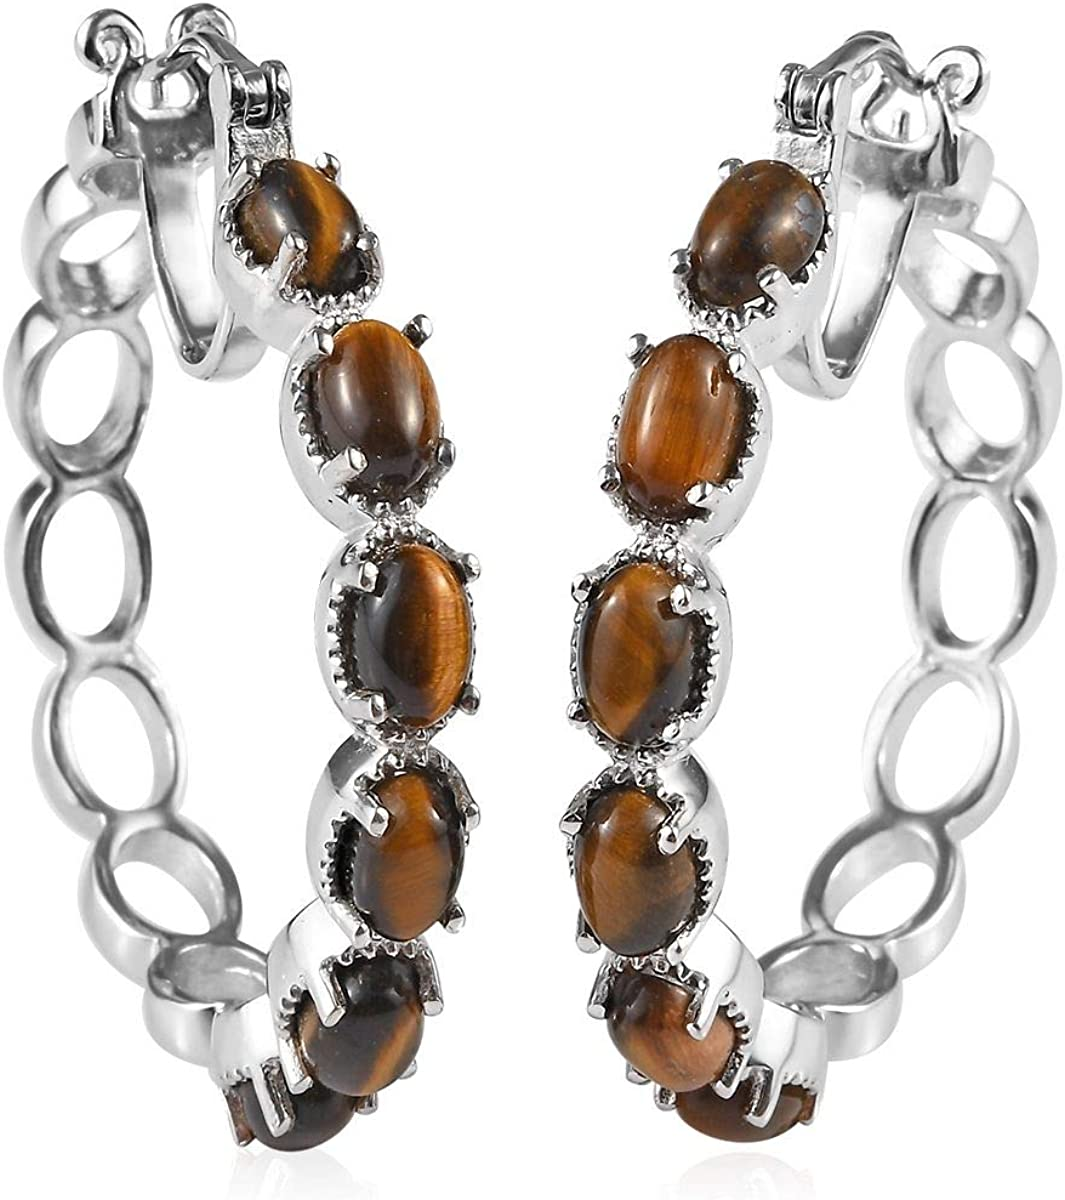 Shop LC Karis Platinum Tigers Eye Hoop Hoops Earrings for Women Fashion Jewelry Gifts Unique Gifts for Women